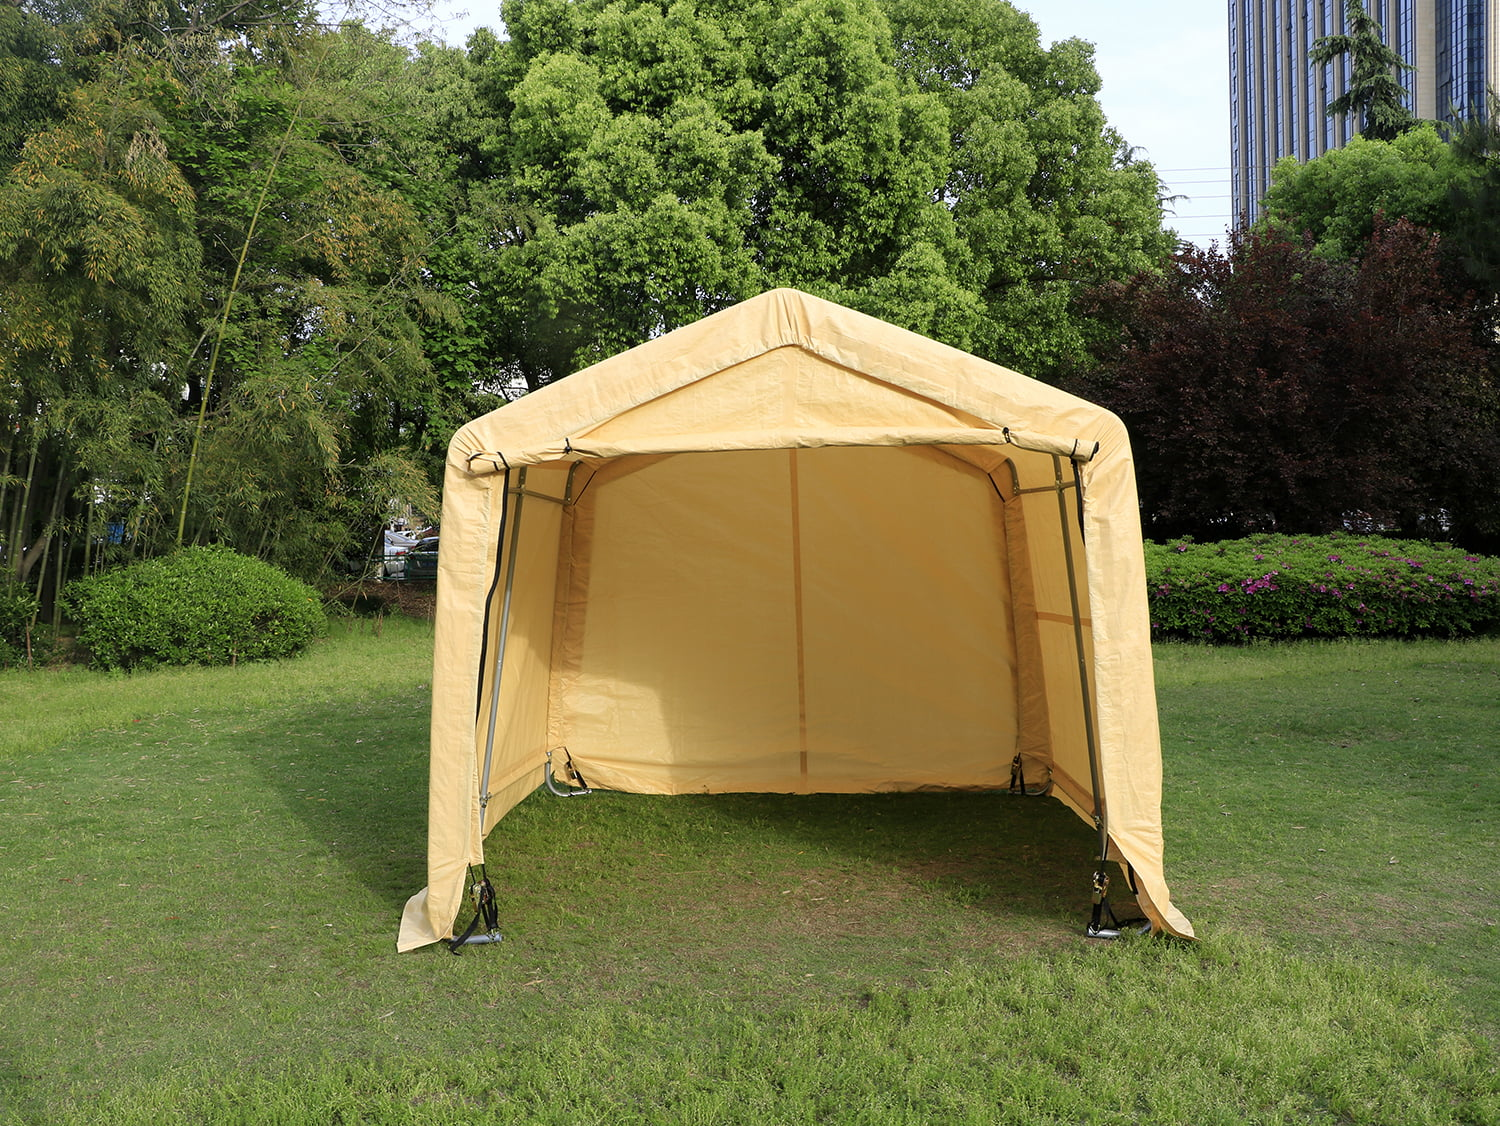 Outdoor 10x10x8FT Carport Canopy Tent Car Storage Shelter Garage w  Sidewall by